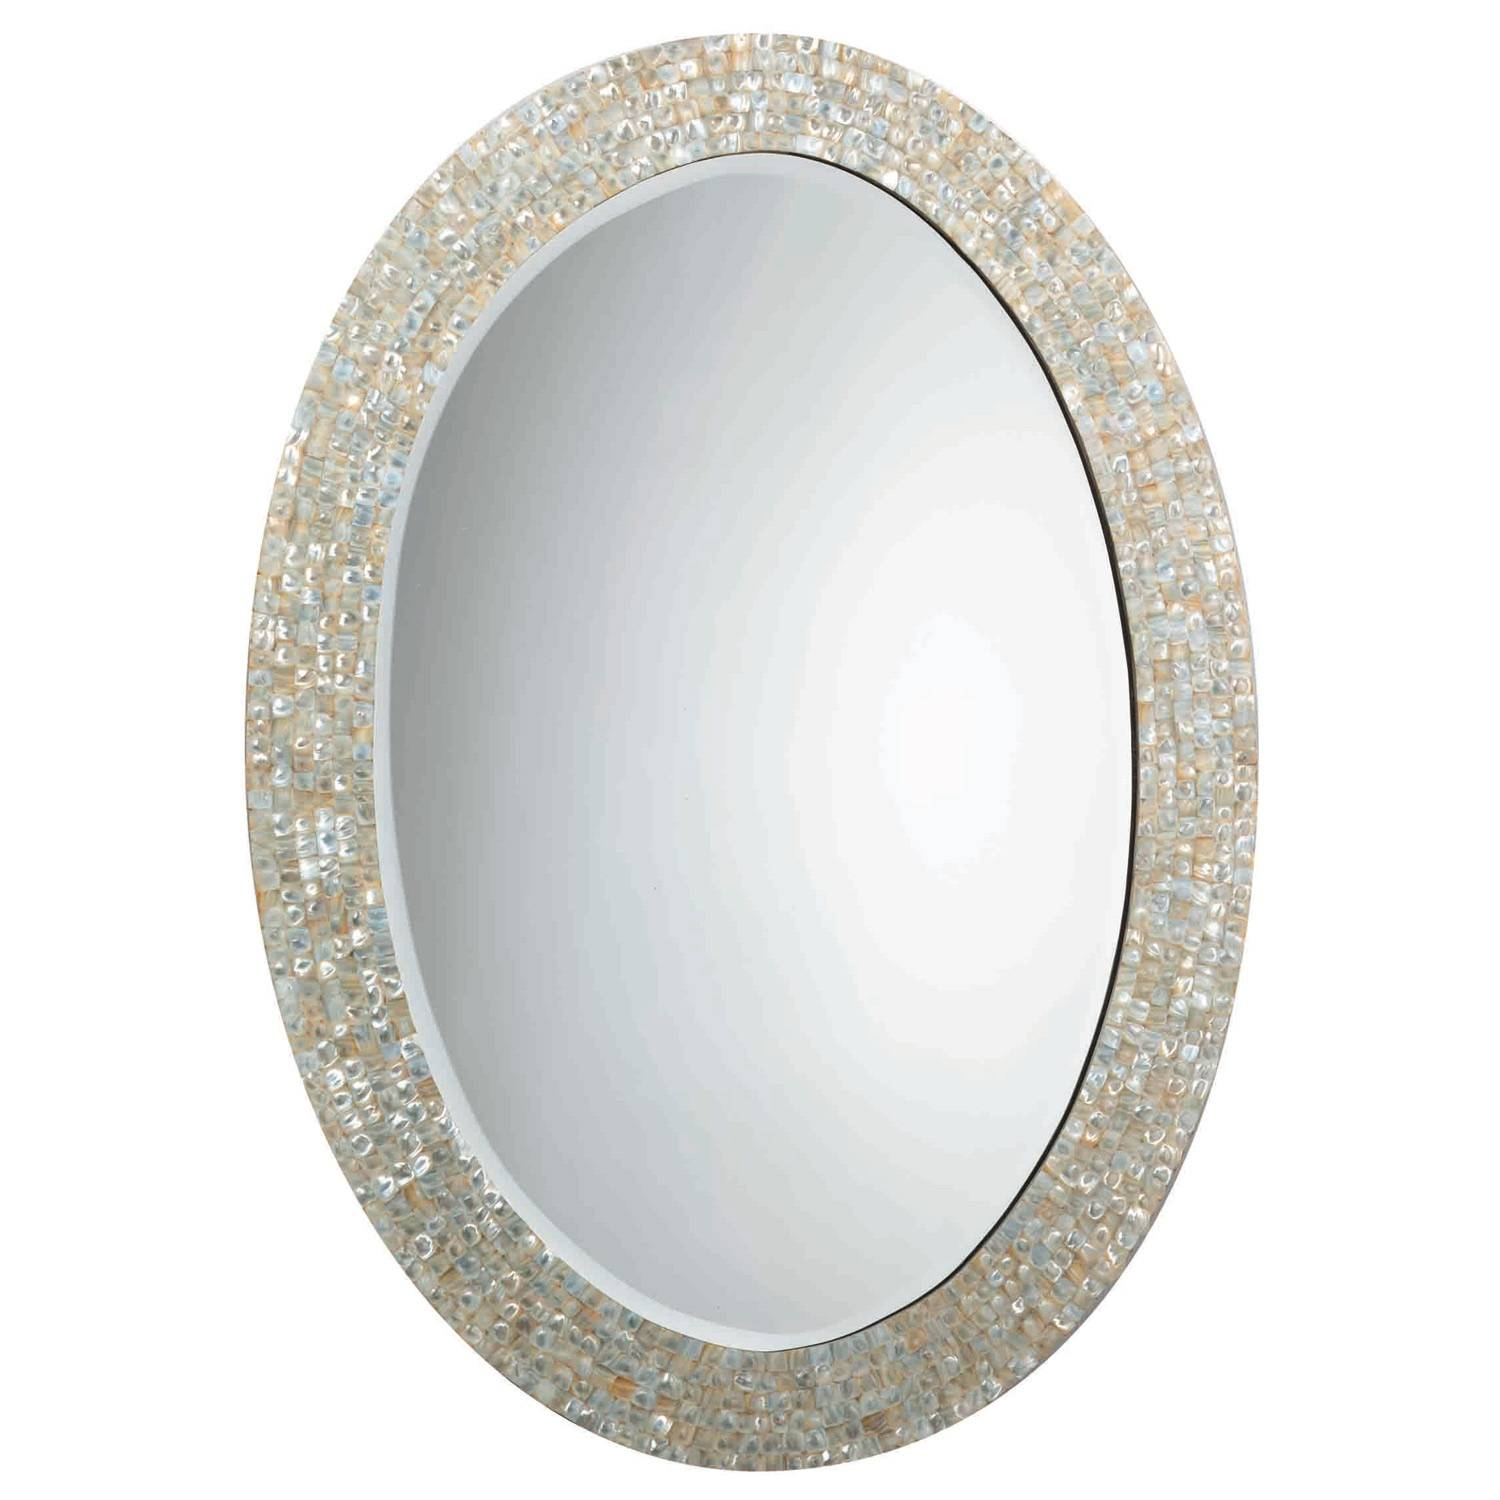 Jamie Young Oval Mother Of Pearl Mirror intended for Mother Of Pearl Wall Mirrors (Image 8 of 15)